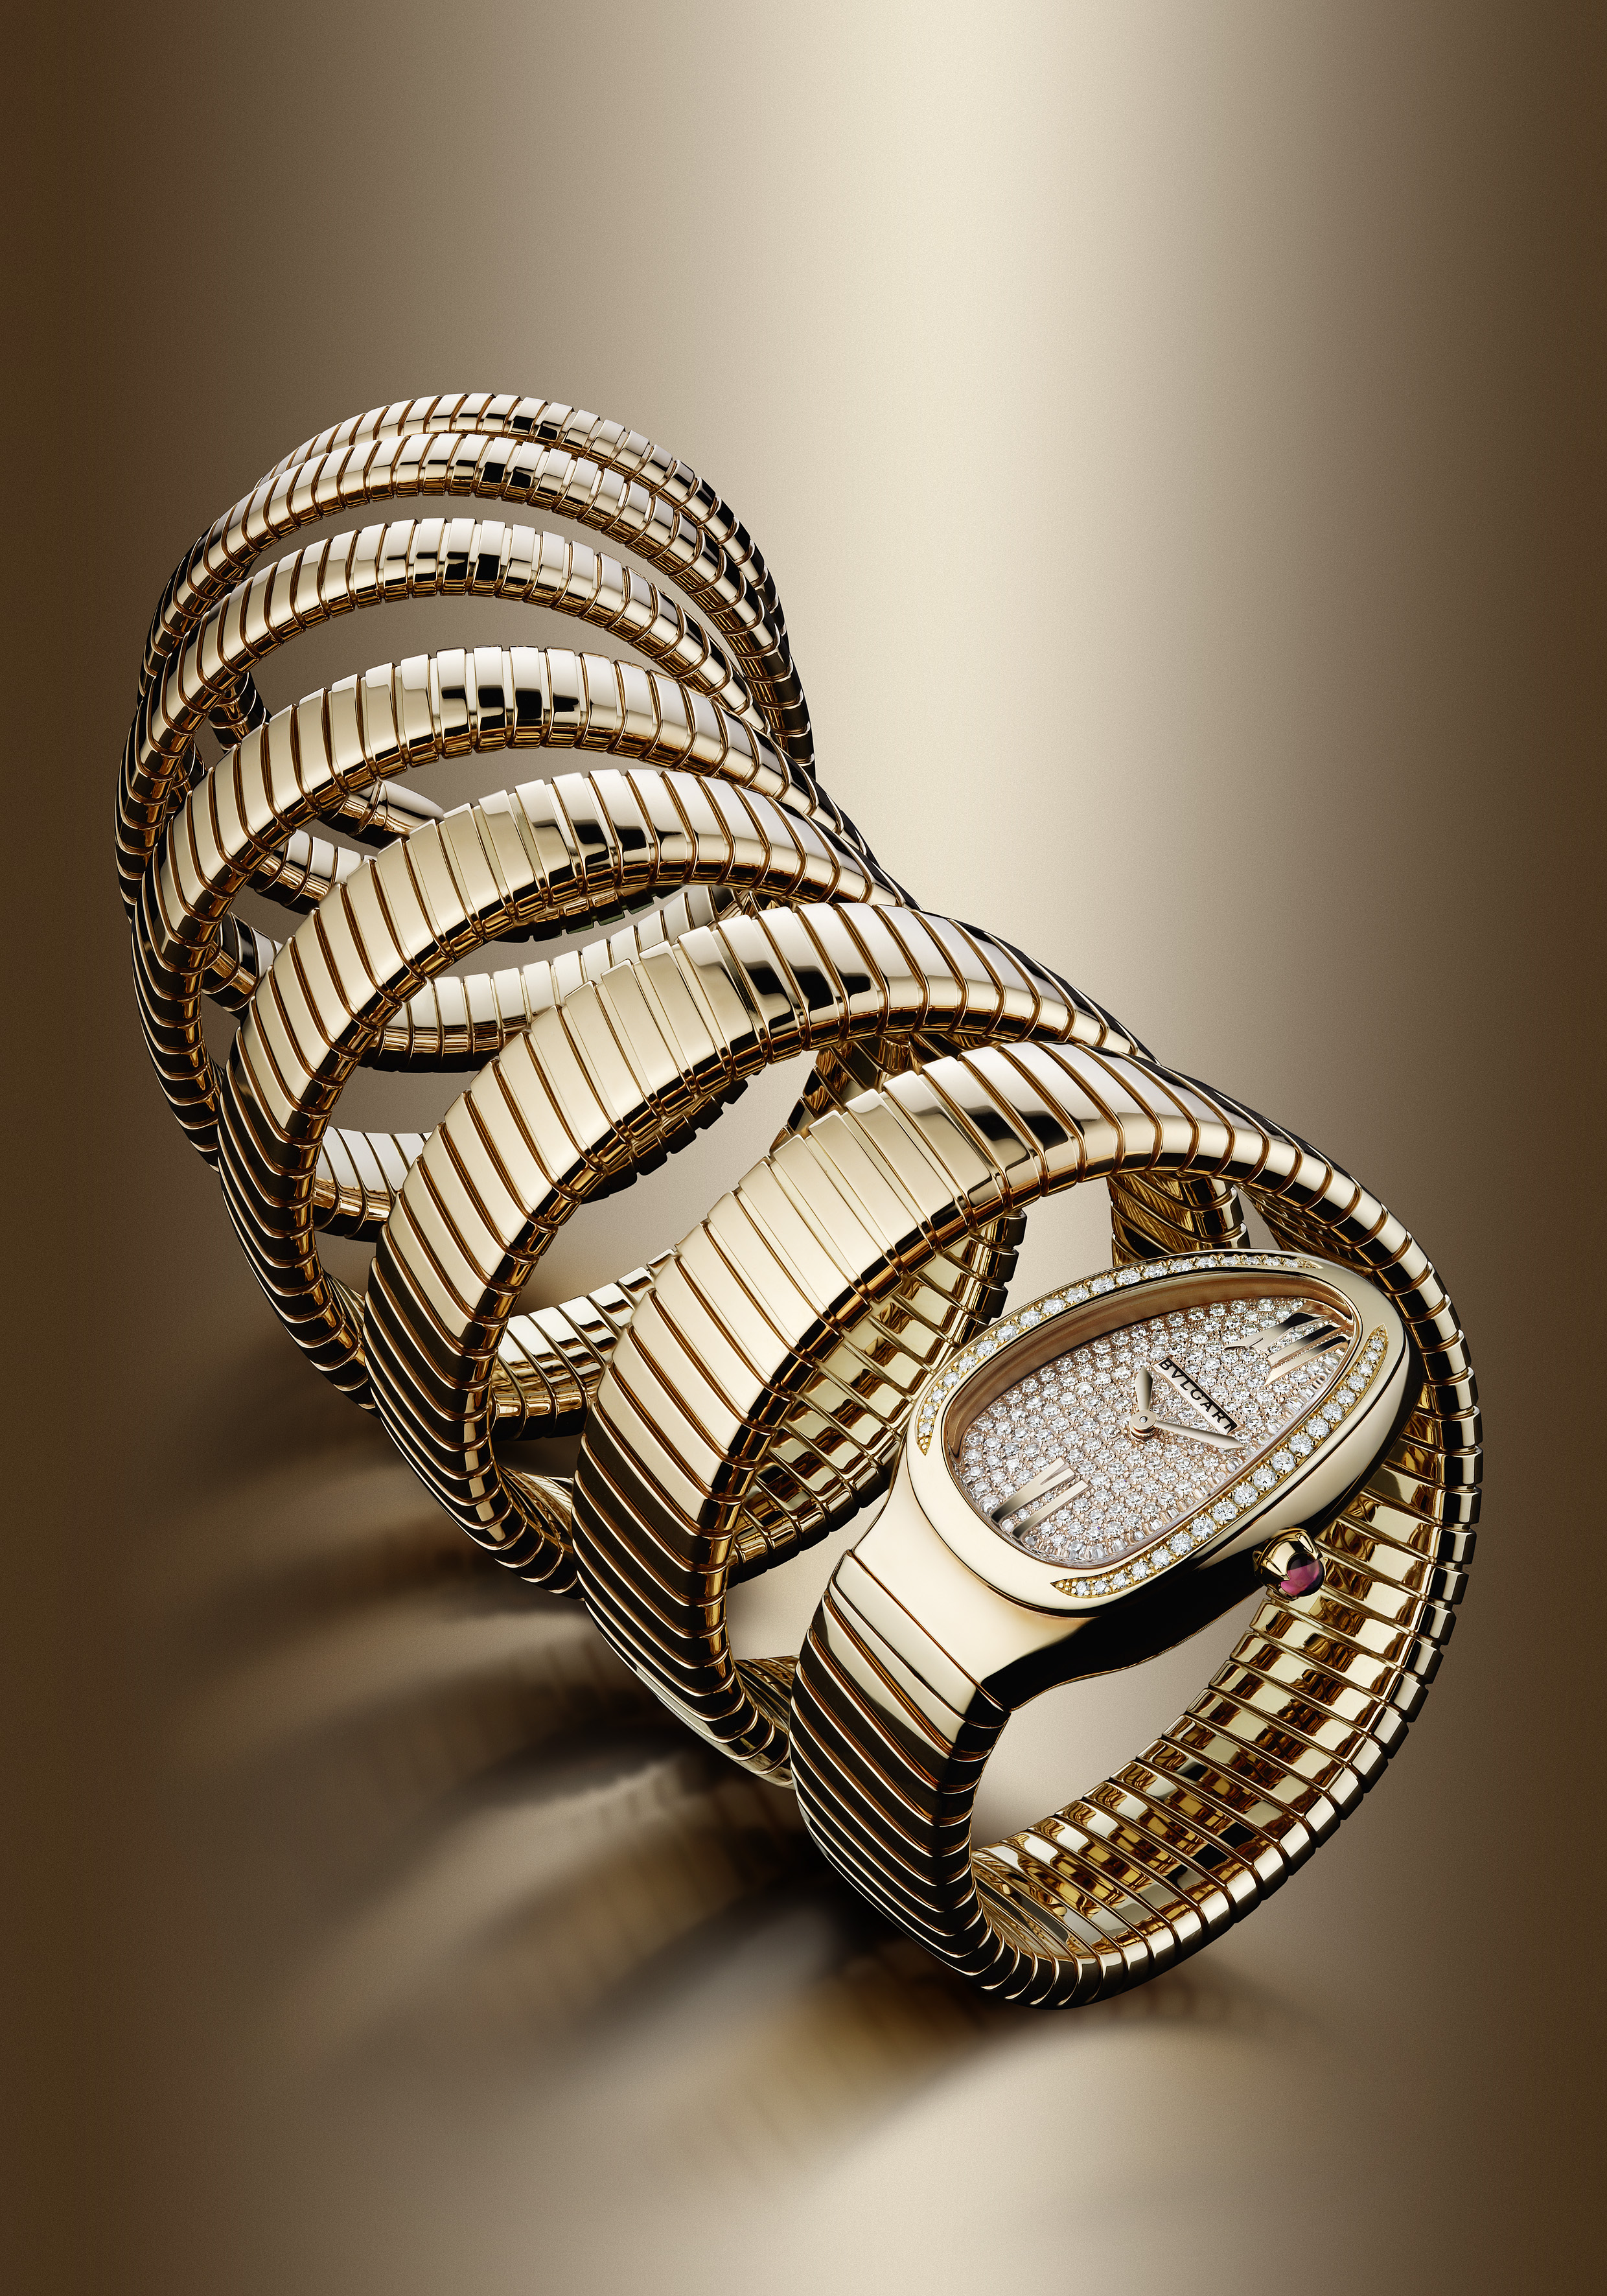 101938- Serpenti watch, 35mm, pink gold-diamonds case, Full setting dial, Quartz movement, pink gold bracelet, 7 loops, Diamonds mounted 1.1100 carats